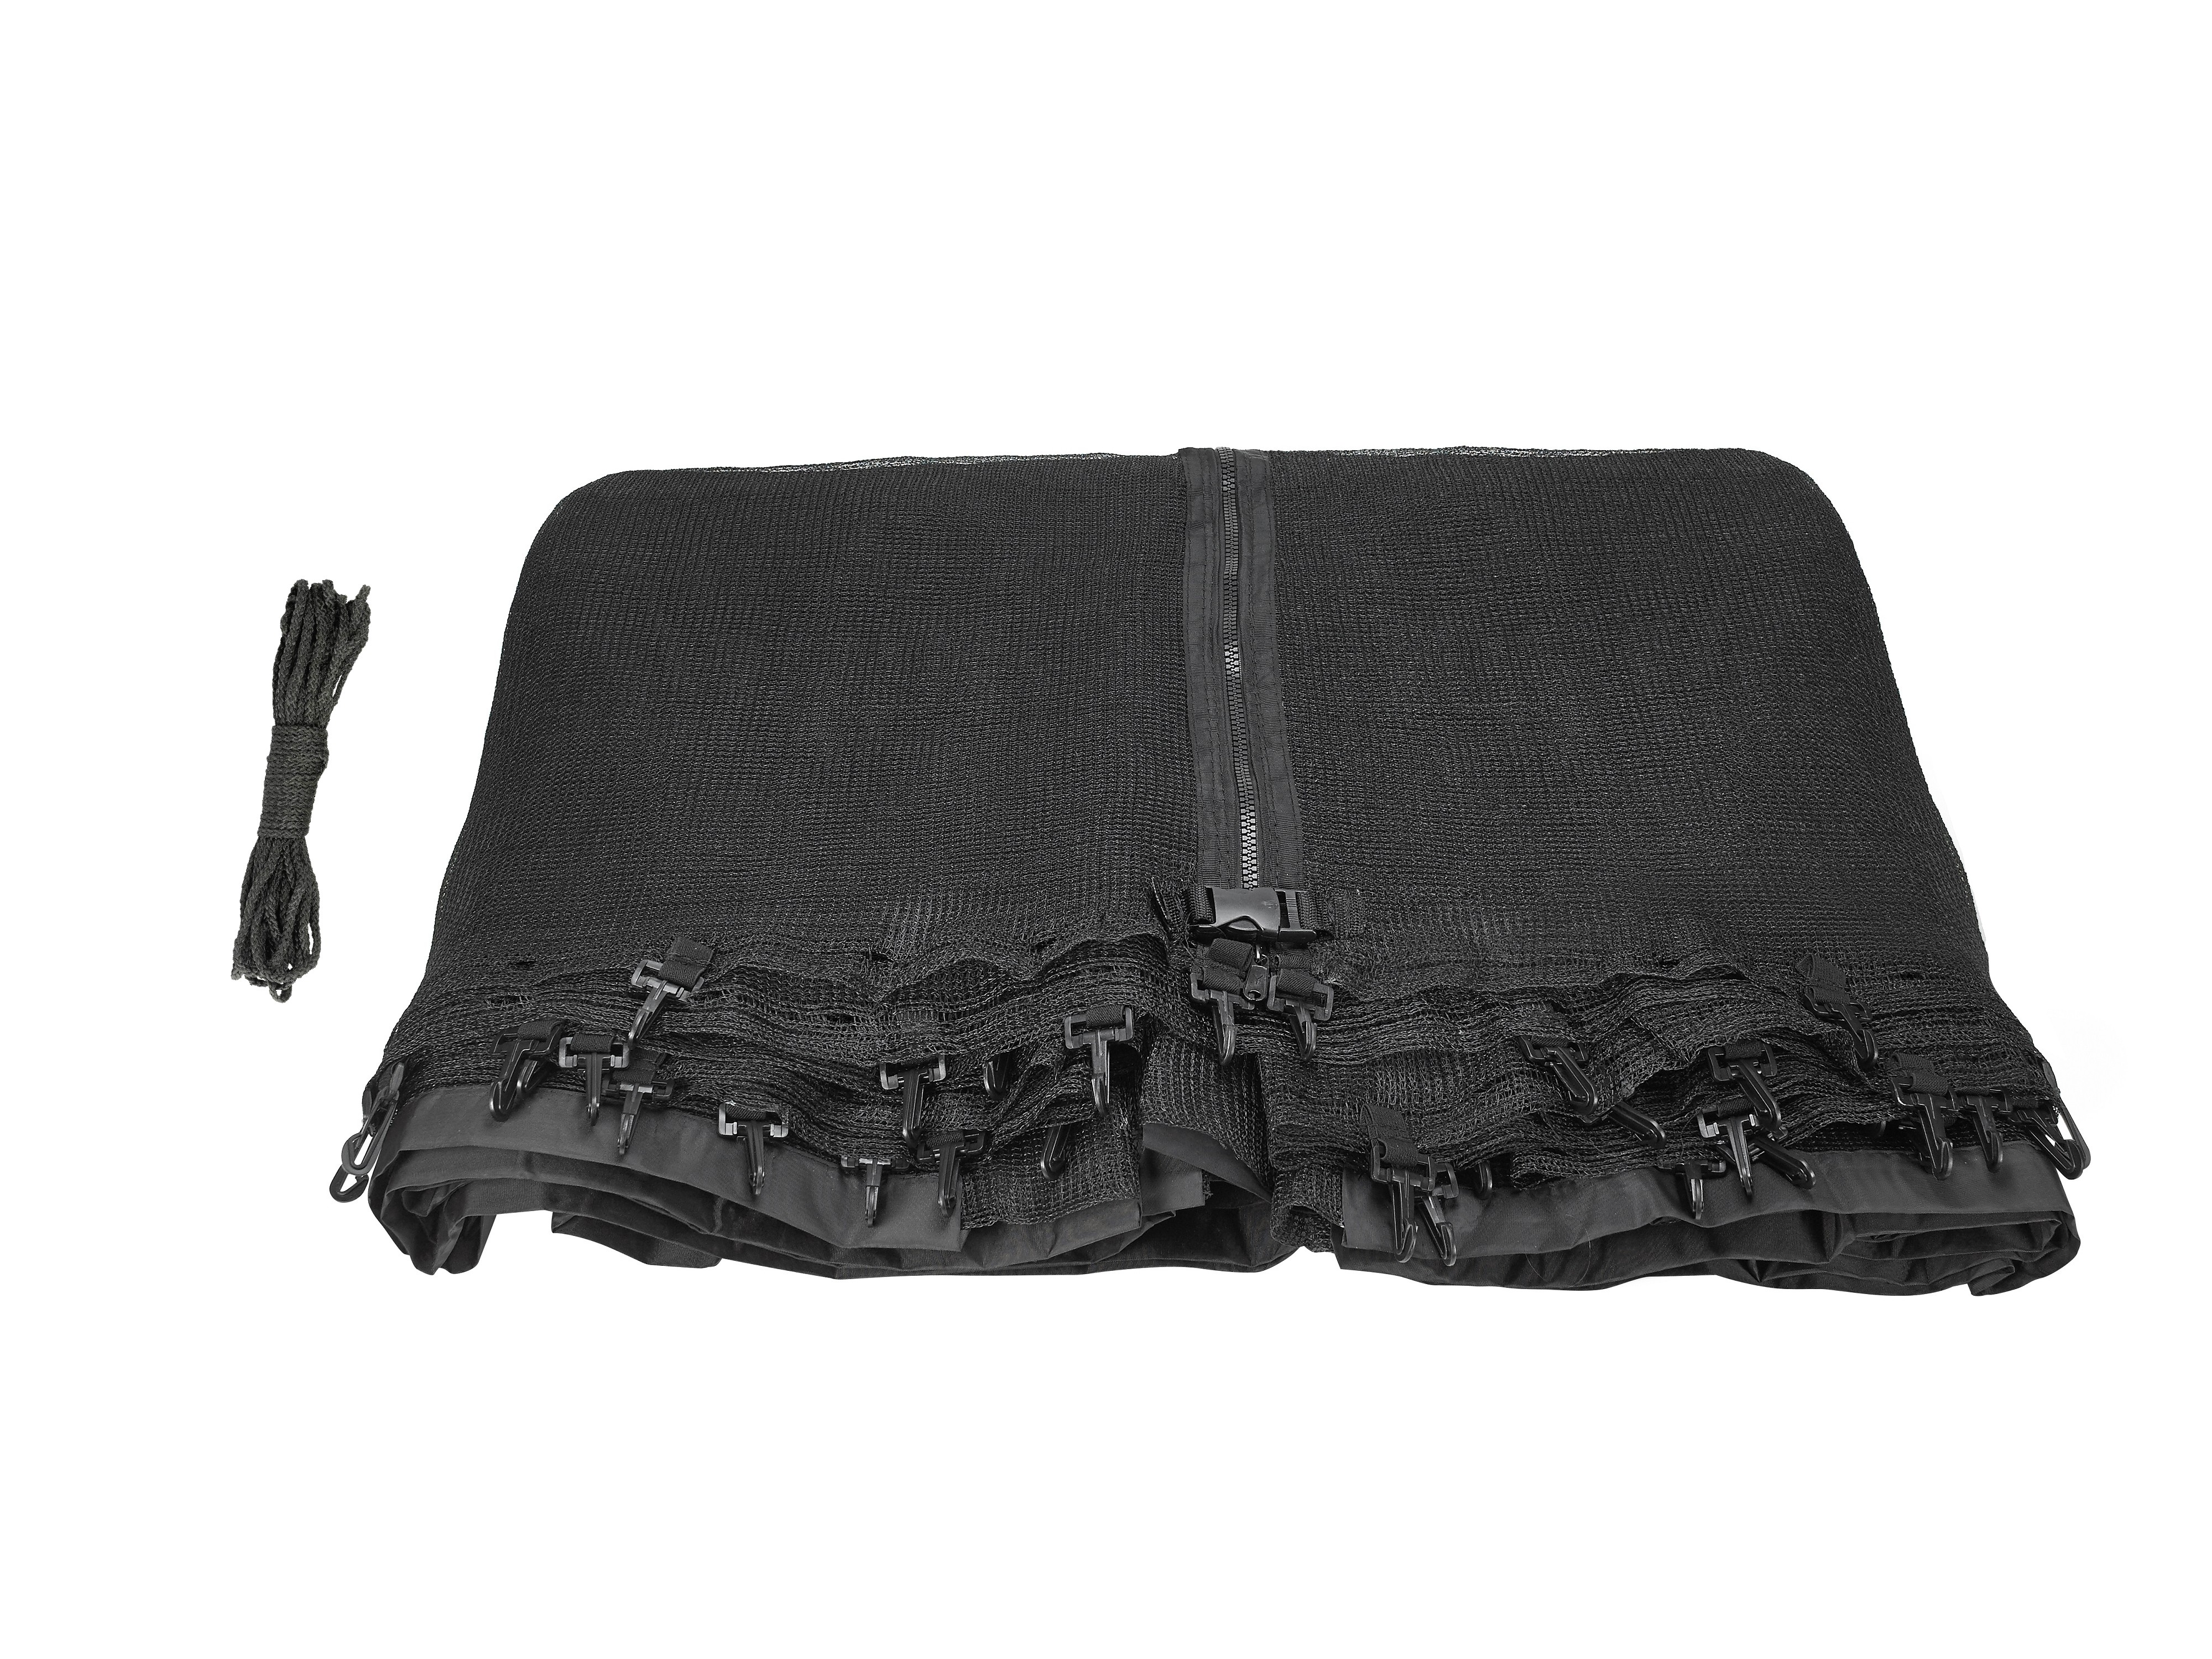 Trampoline Replacement Enclosure Net for Upper Bounce 10 x 17 Ft Rectangle Trampoline